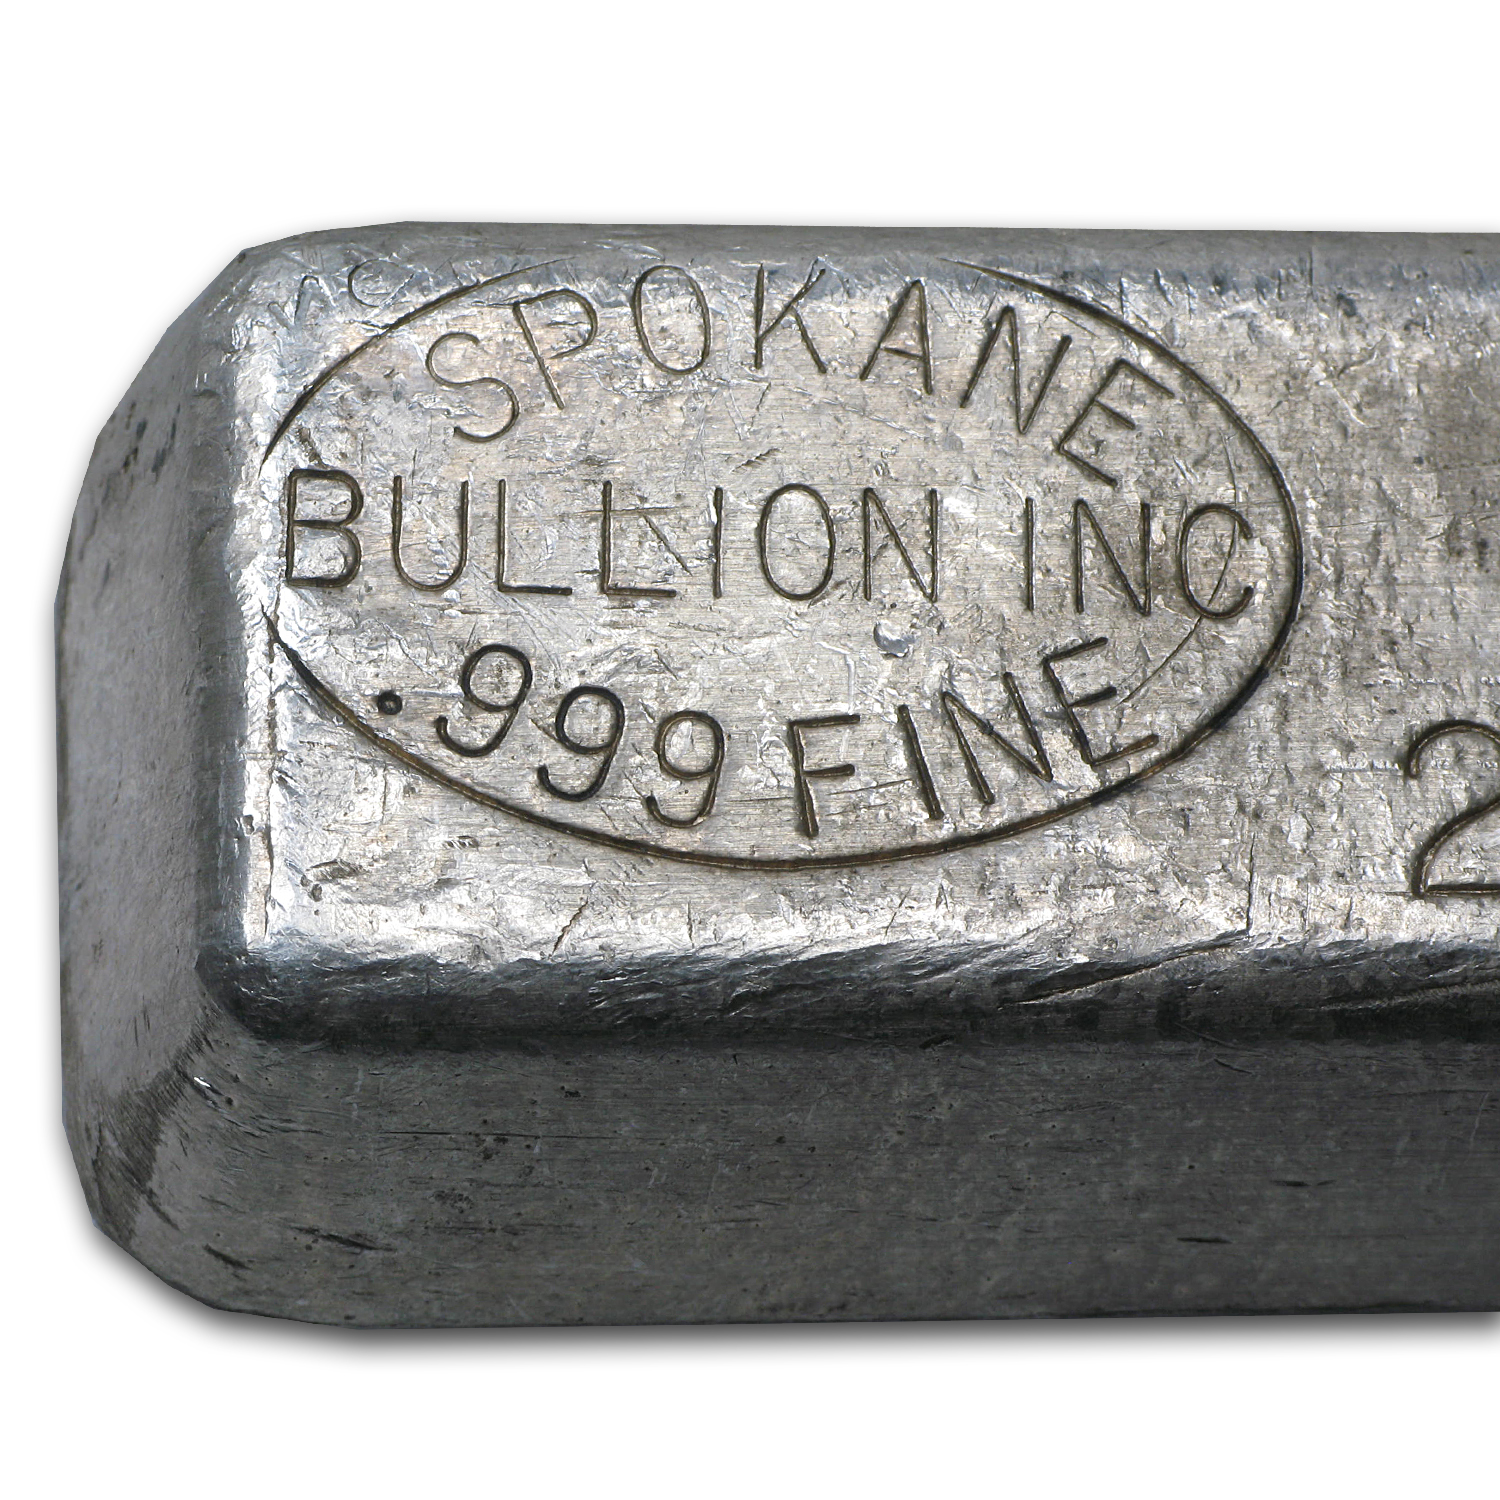 24.75 oz Silver Bars - Spokane Bullion Inc